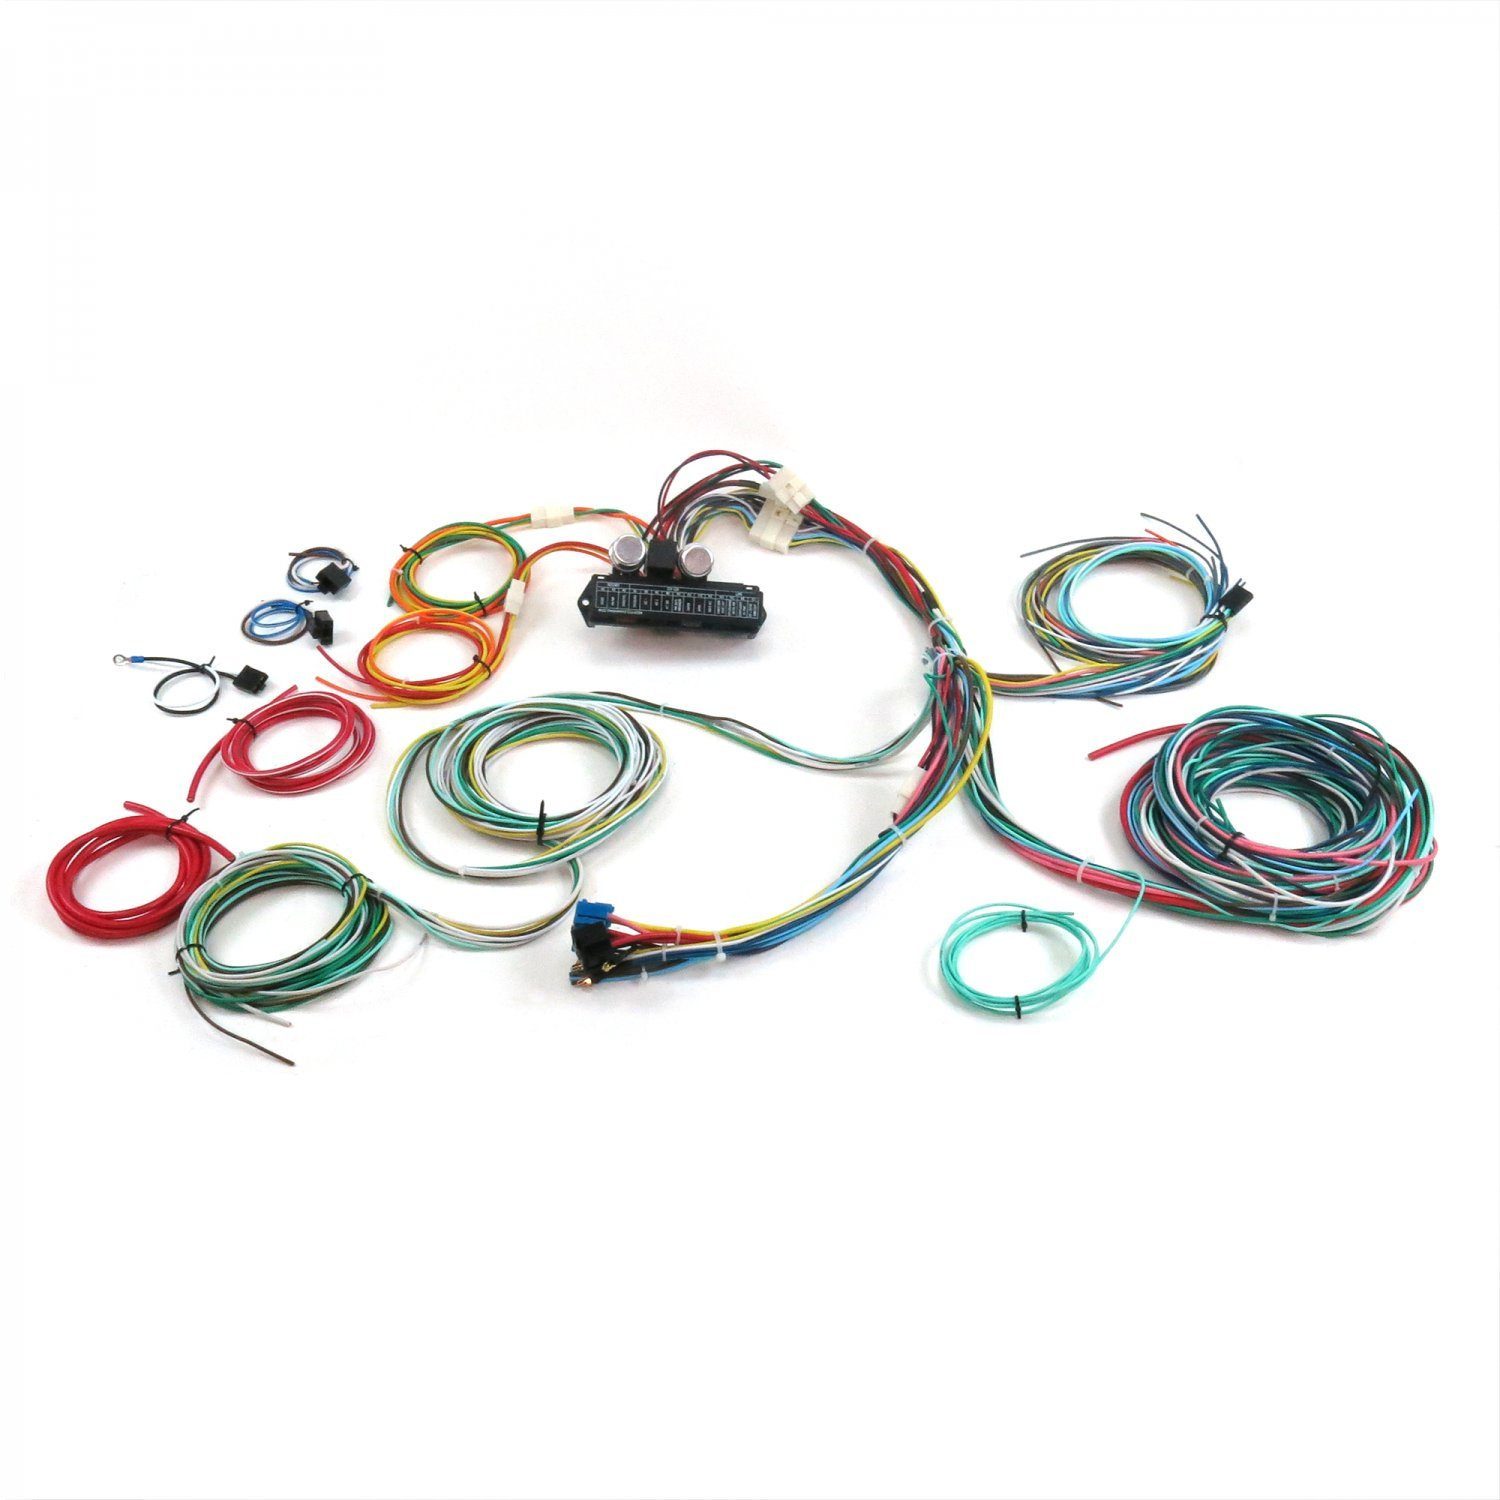 amazon com: keep it clean 689462 wiring harness (ultimate 15 fuse 12v  conversion 38 1938 ford convertible-2-door,4-door): automotive